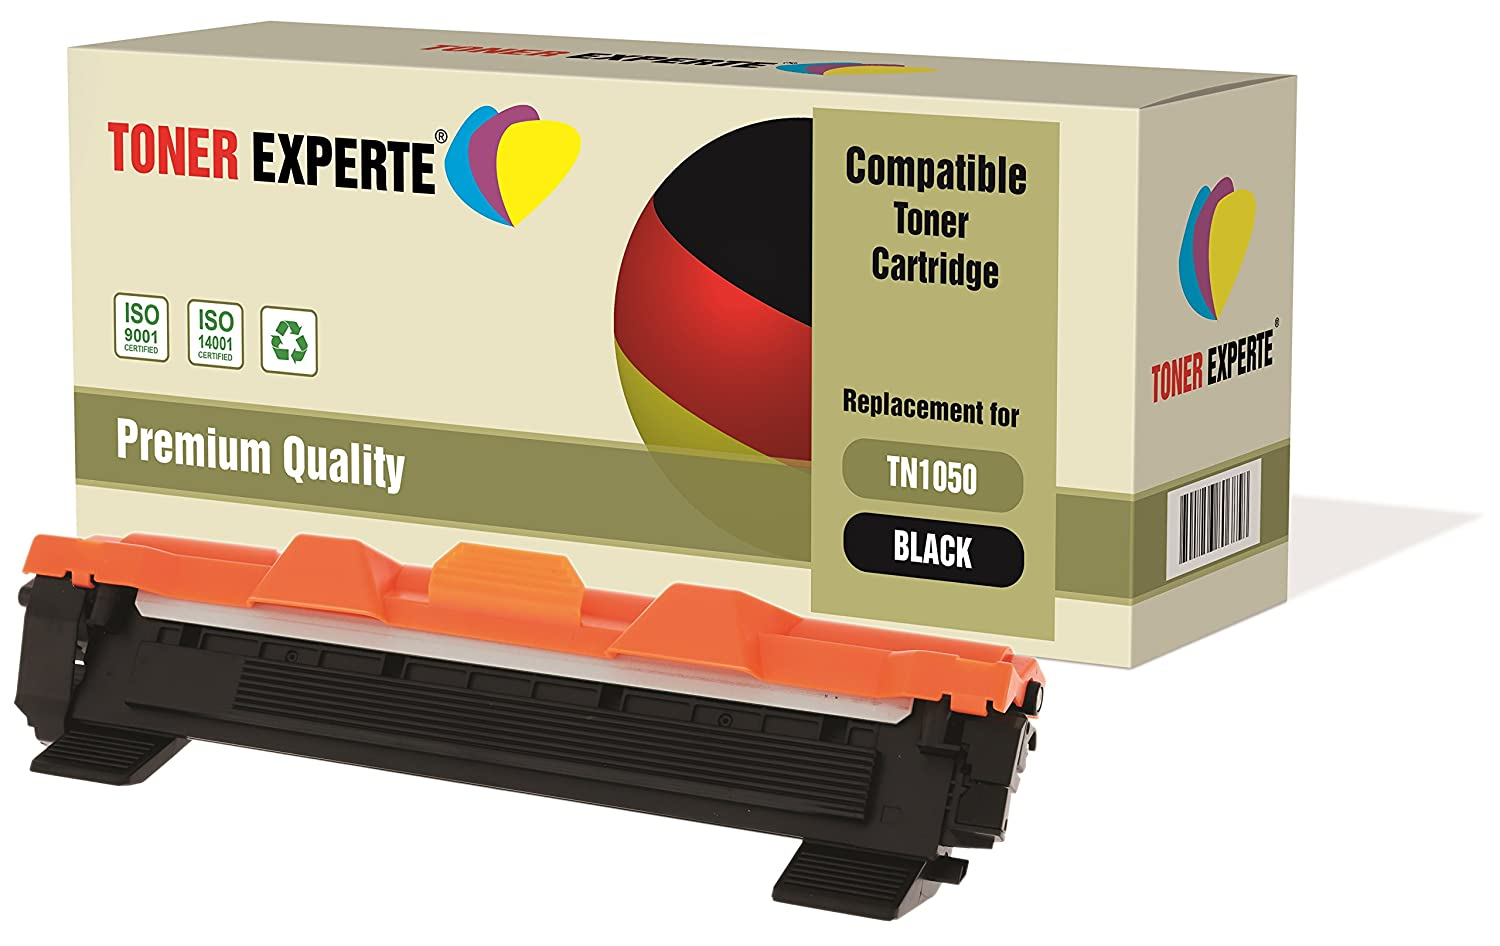 TONER EXPERTE® TN1050 Cartucho de Tóner Compatible para Brother HL ...